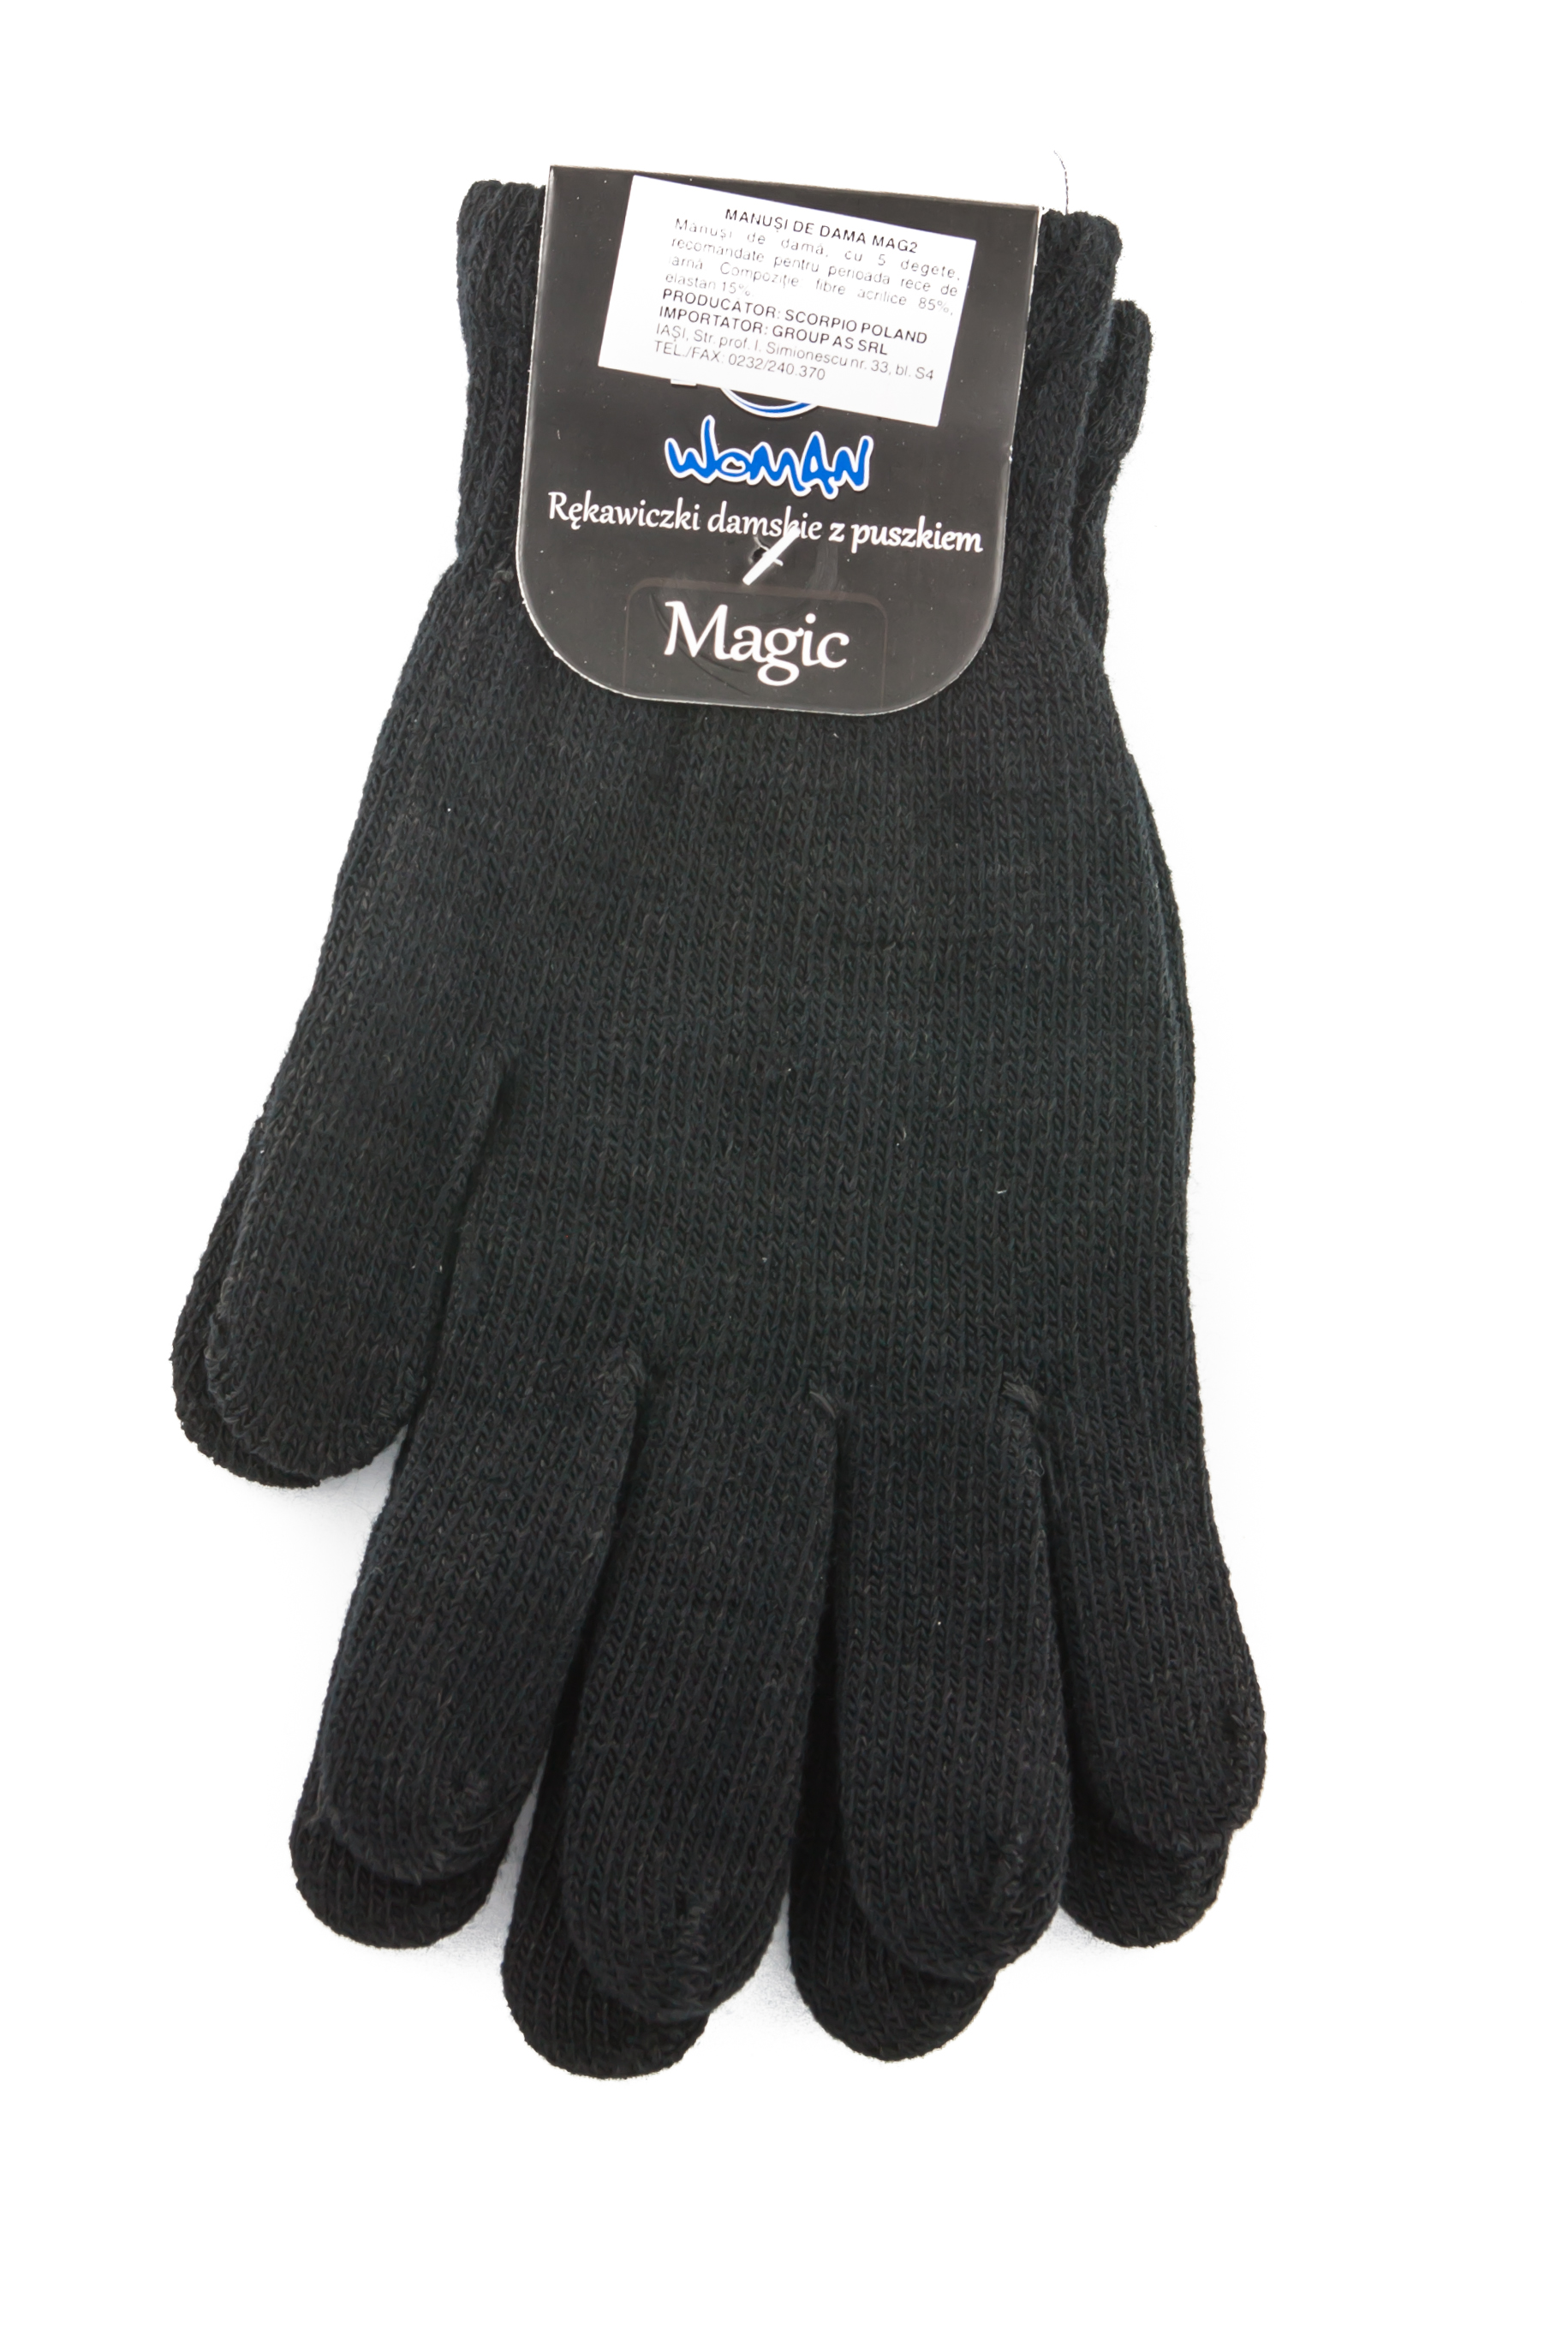 Acrylic gloves, black colors MAG2MIXT